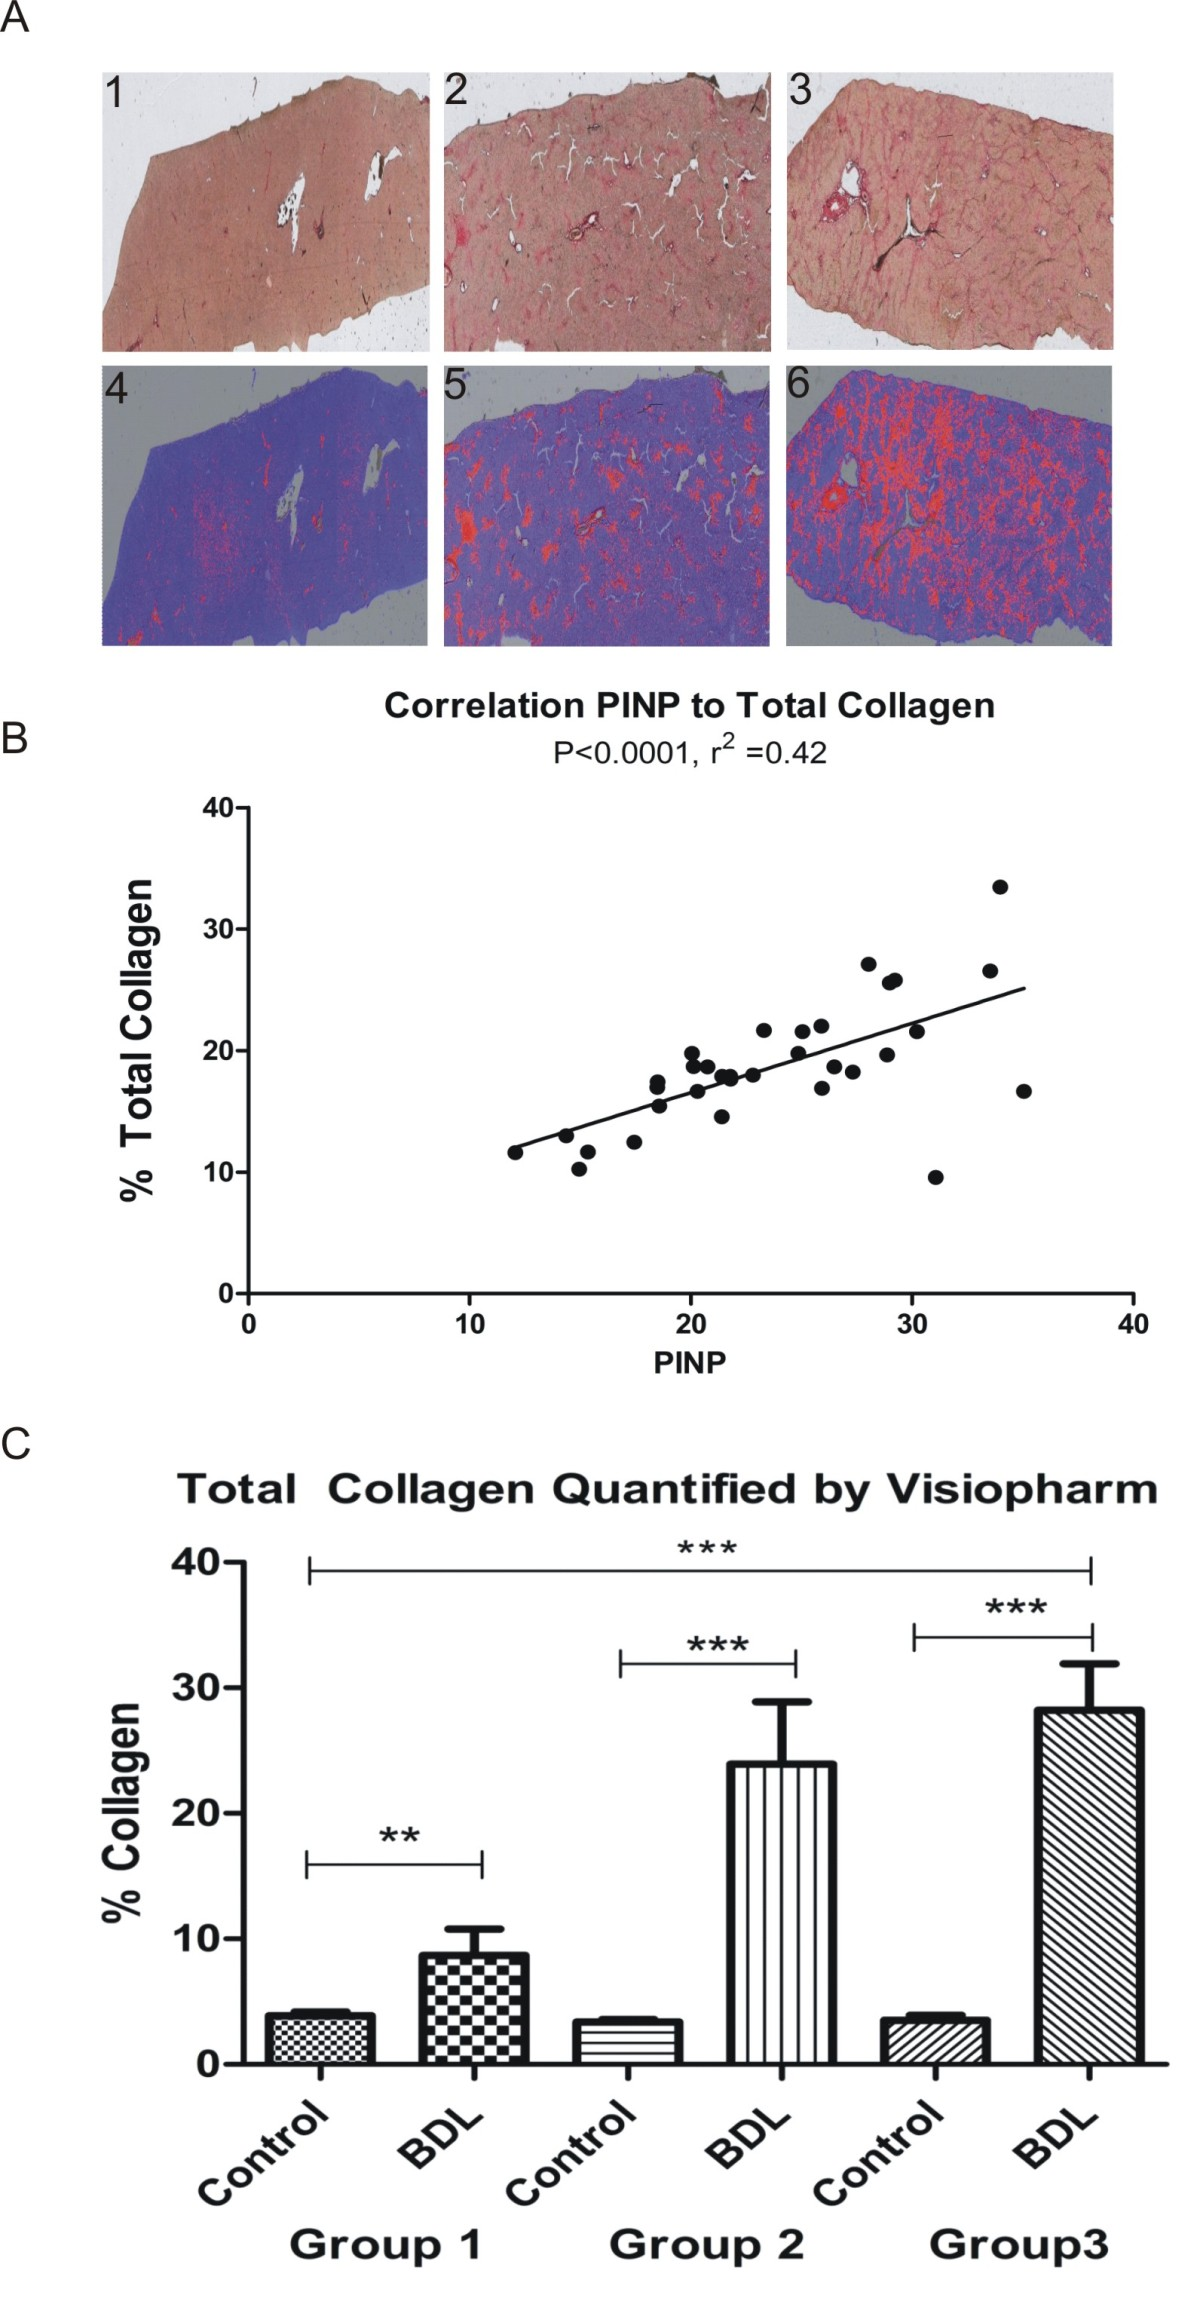 http://static-content.springer.com/image/art%3A10.1186%2F1755-1536-3-5/MediaObjects/13069_2009_Article_20_Fig3_HTML.jpg